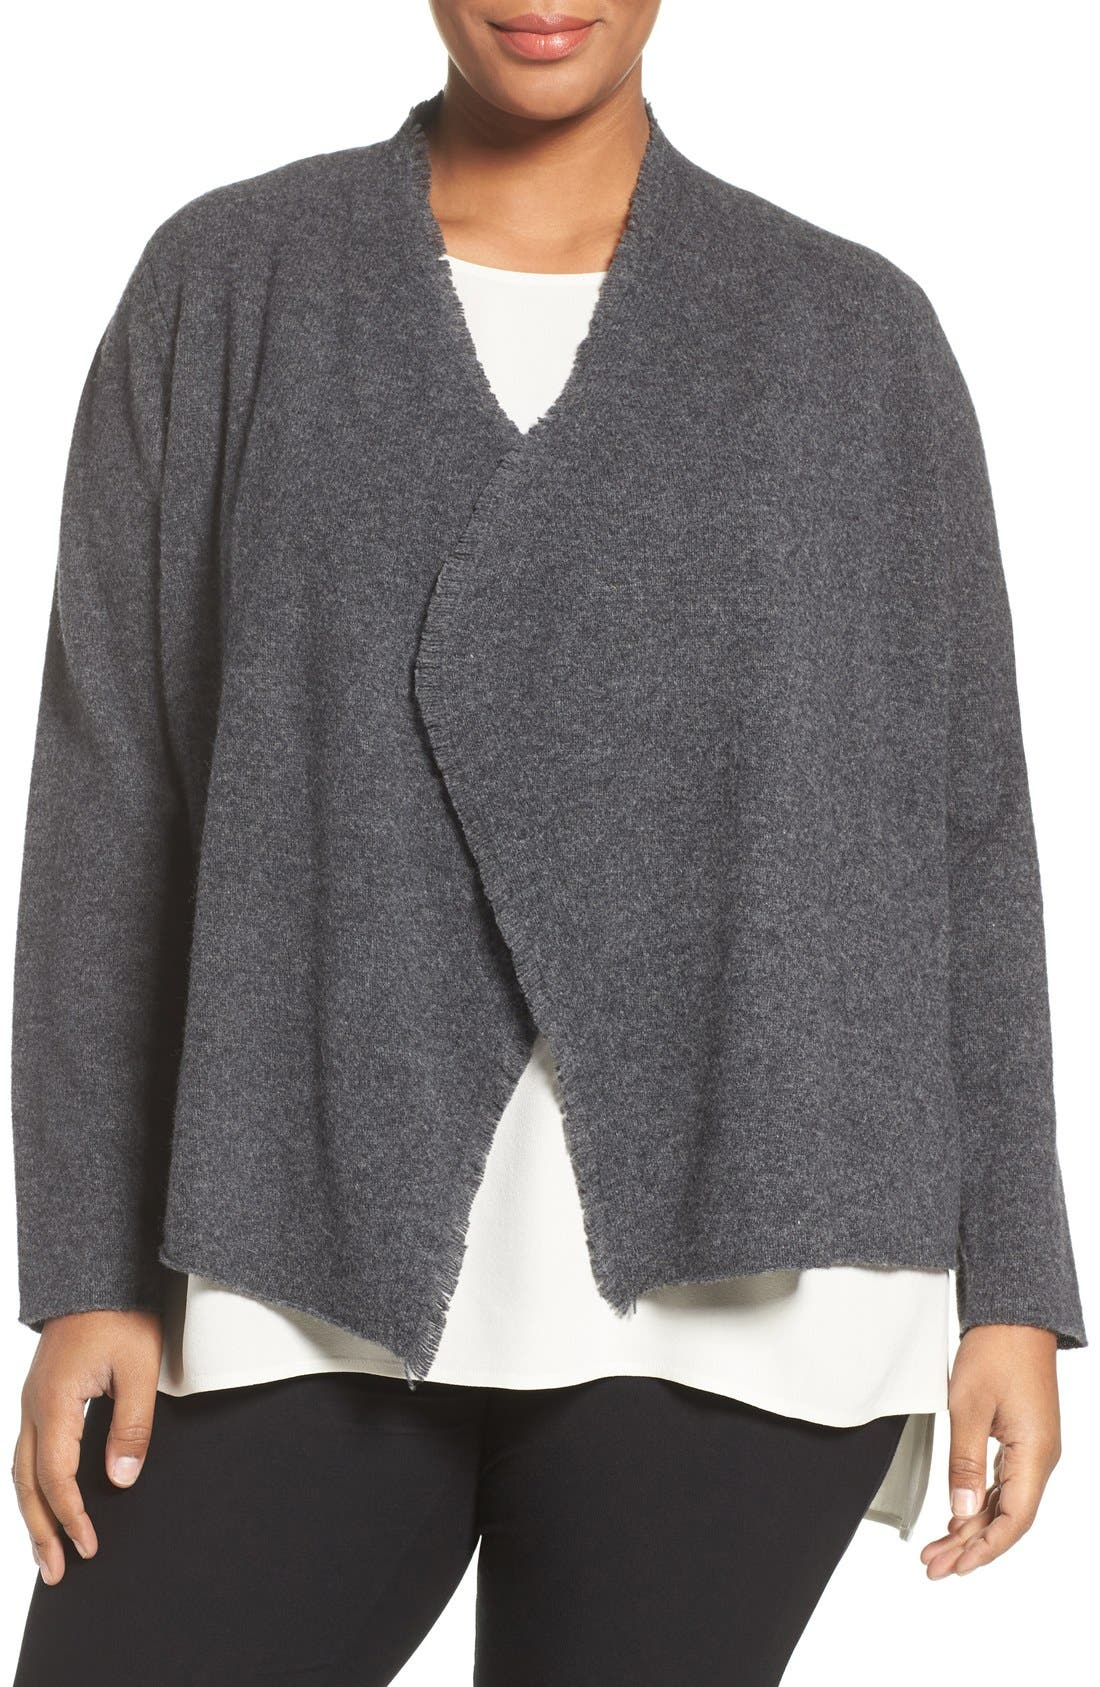 Alternate Image 1 Selected - Eileen Fisher Felted Merino Sweater Jacket (Plus Size)